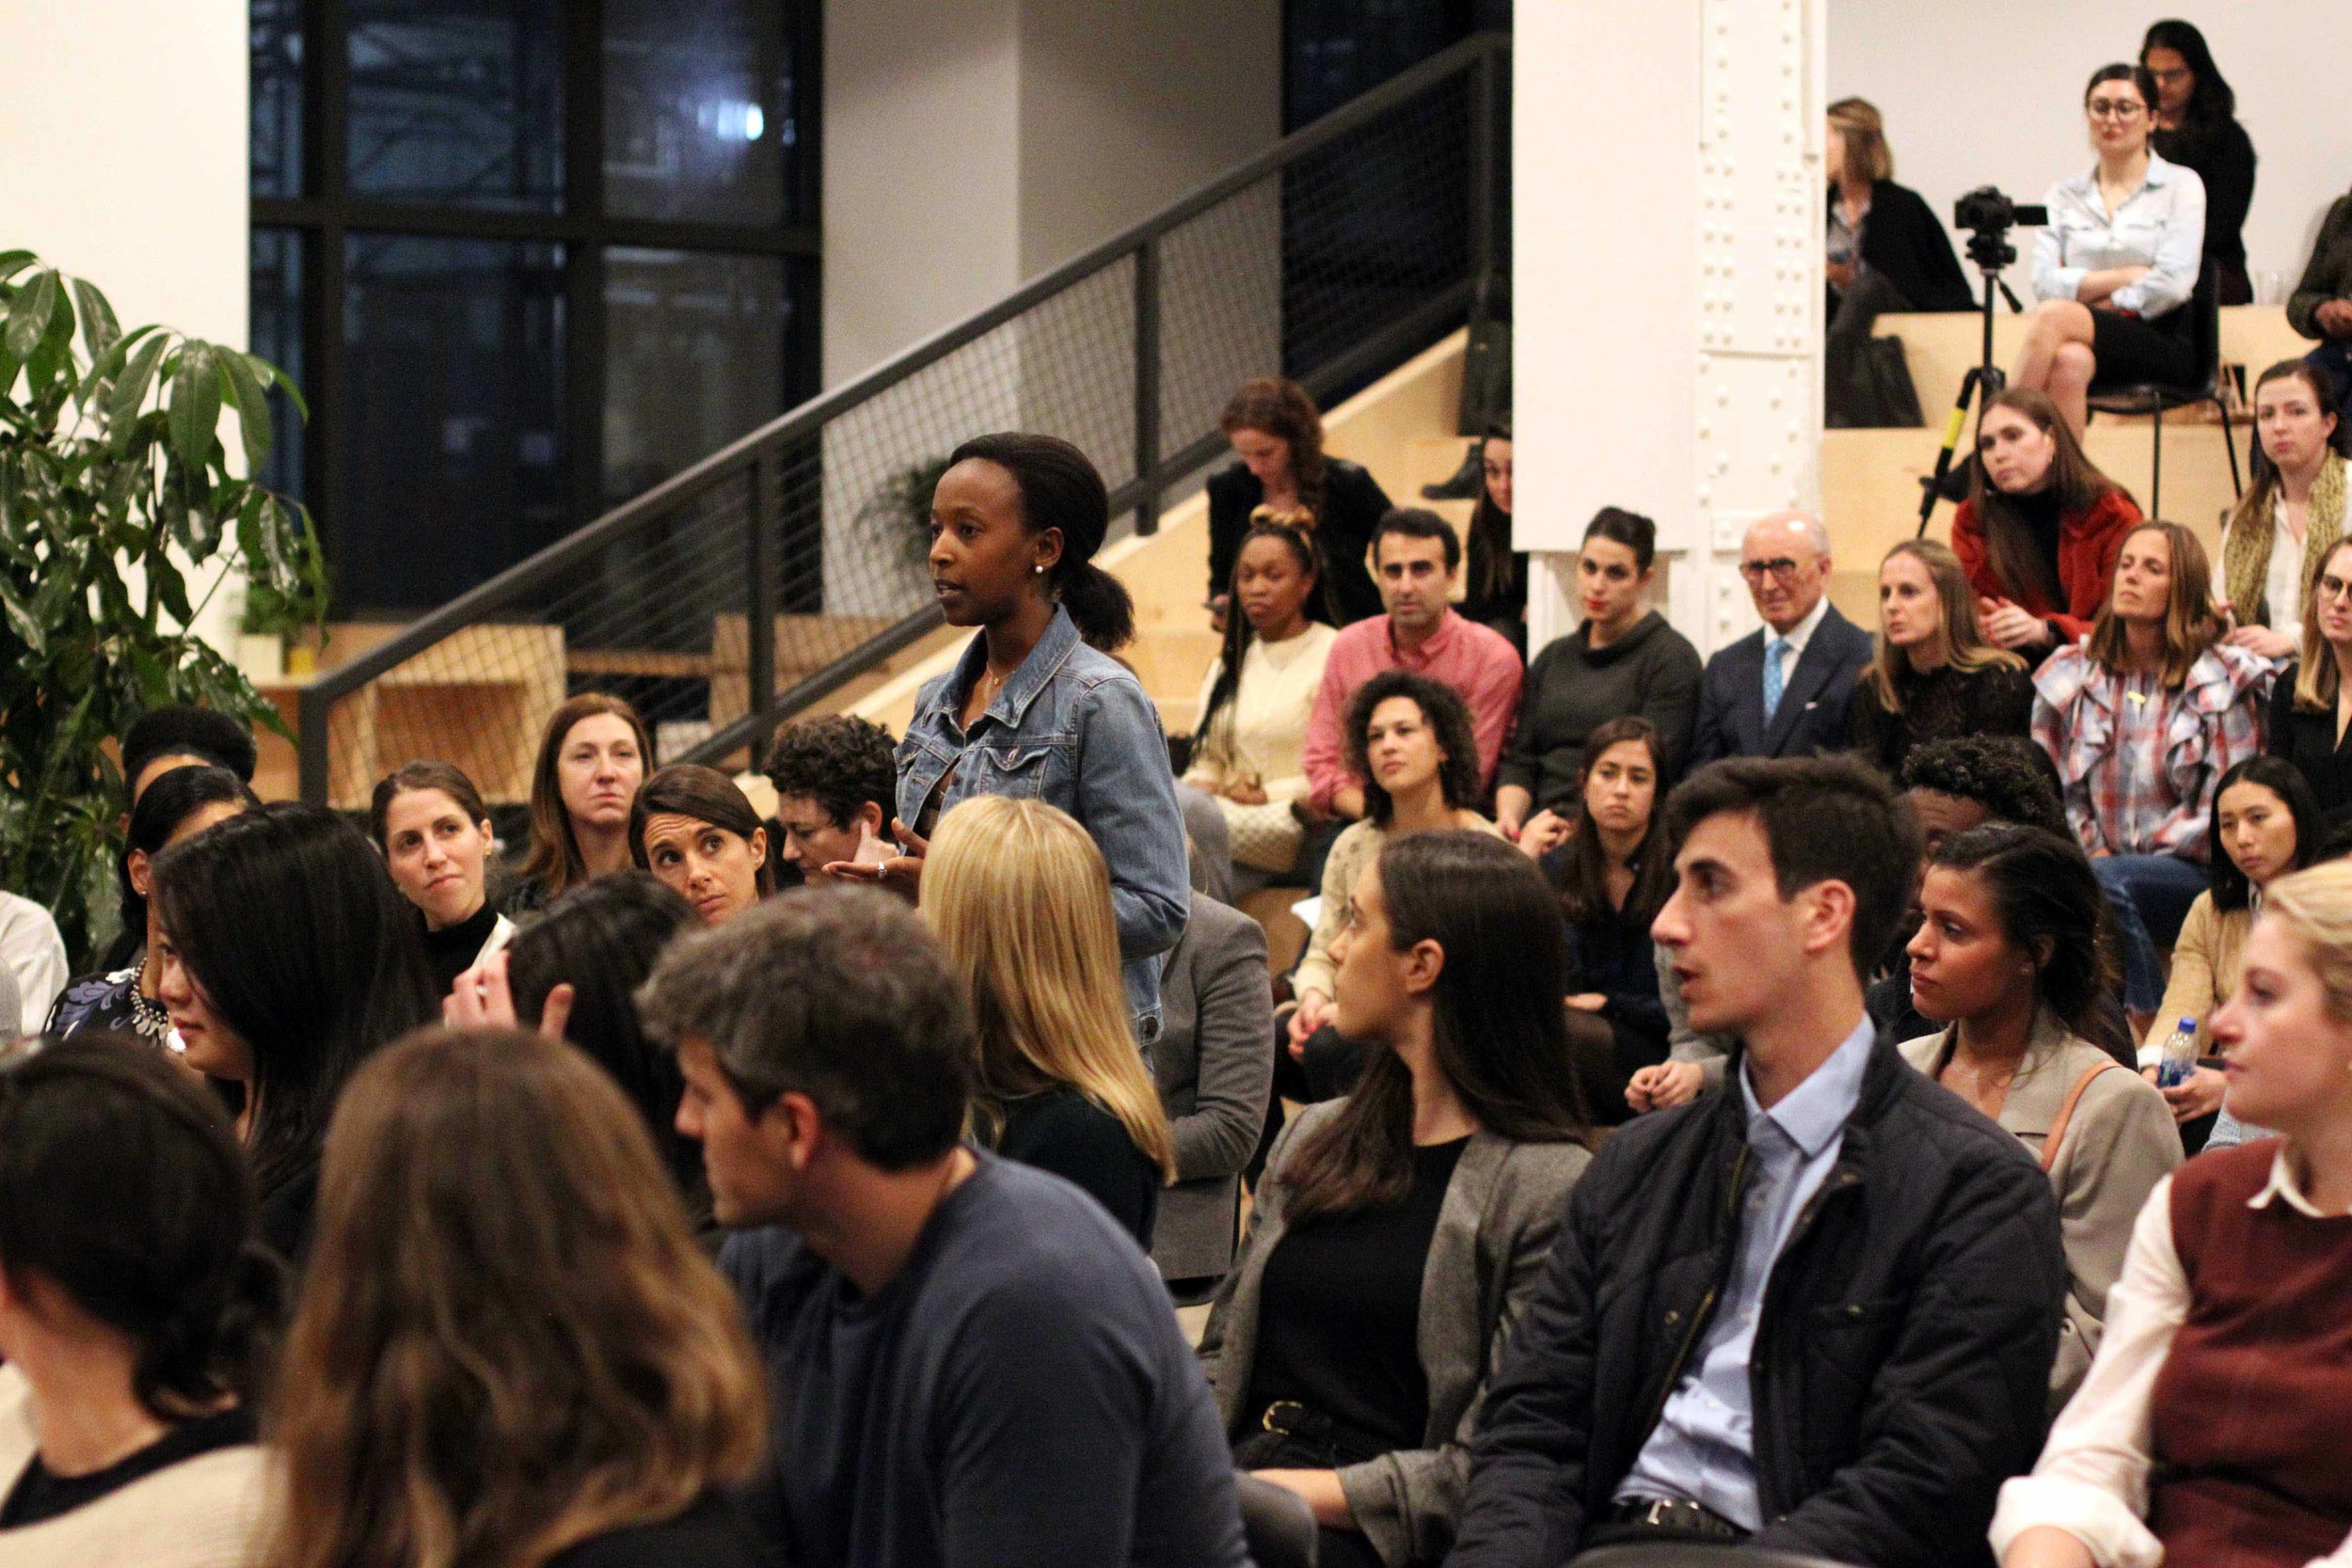 The engaged audience at Company's events plays a key role in the conversations. Picture: Nick Weinberg